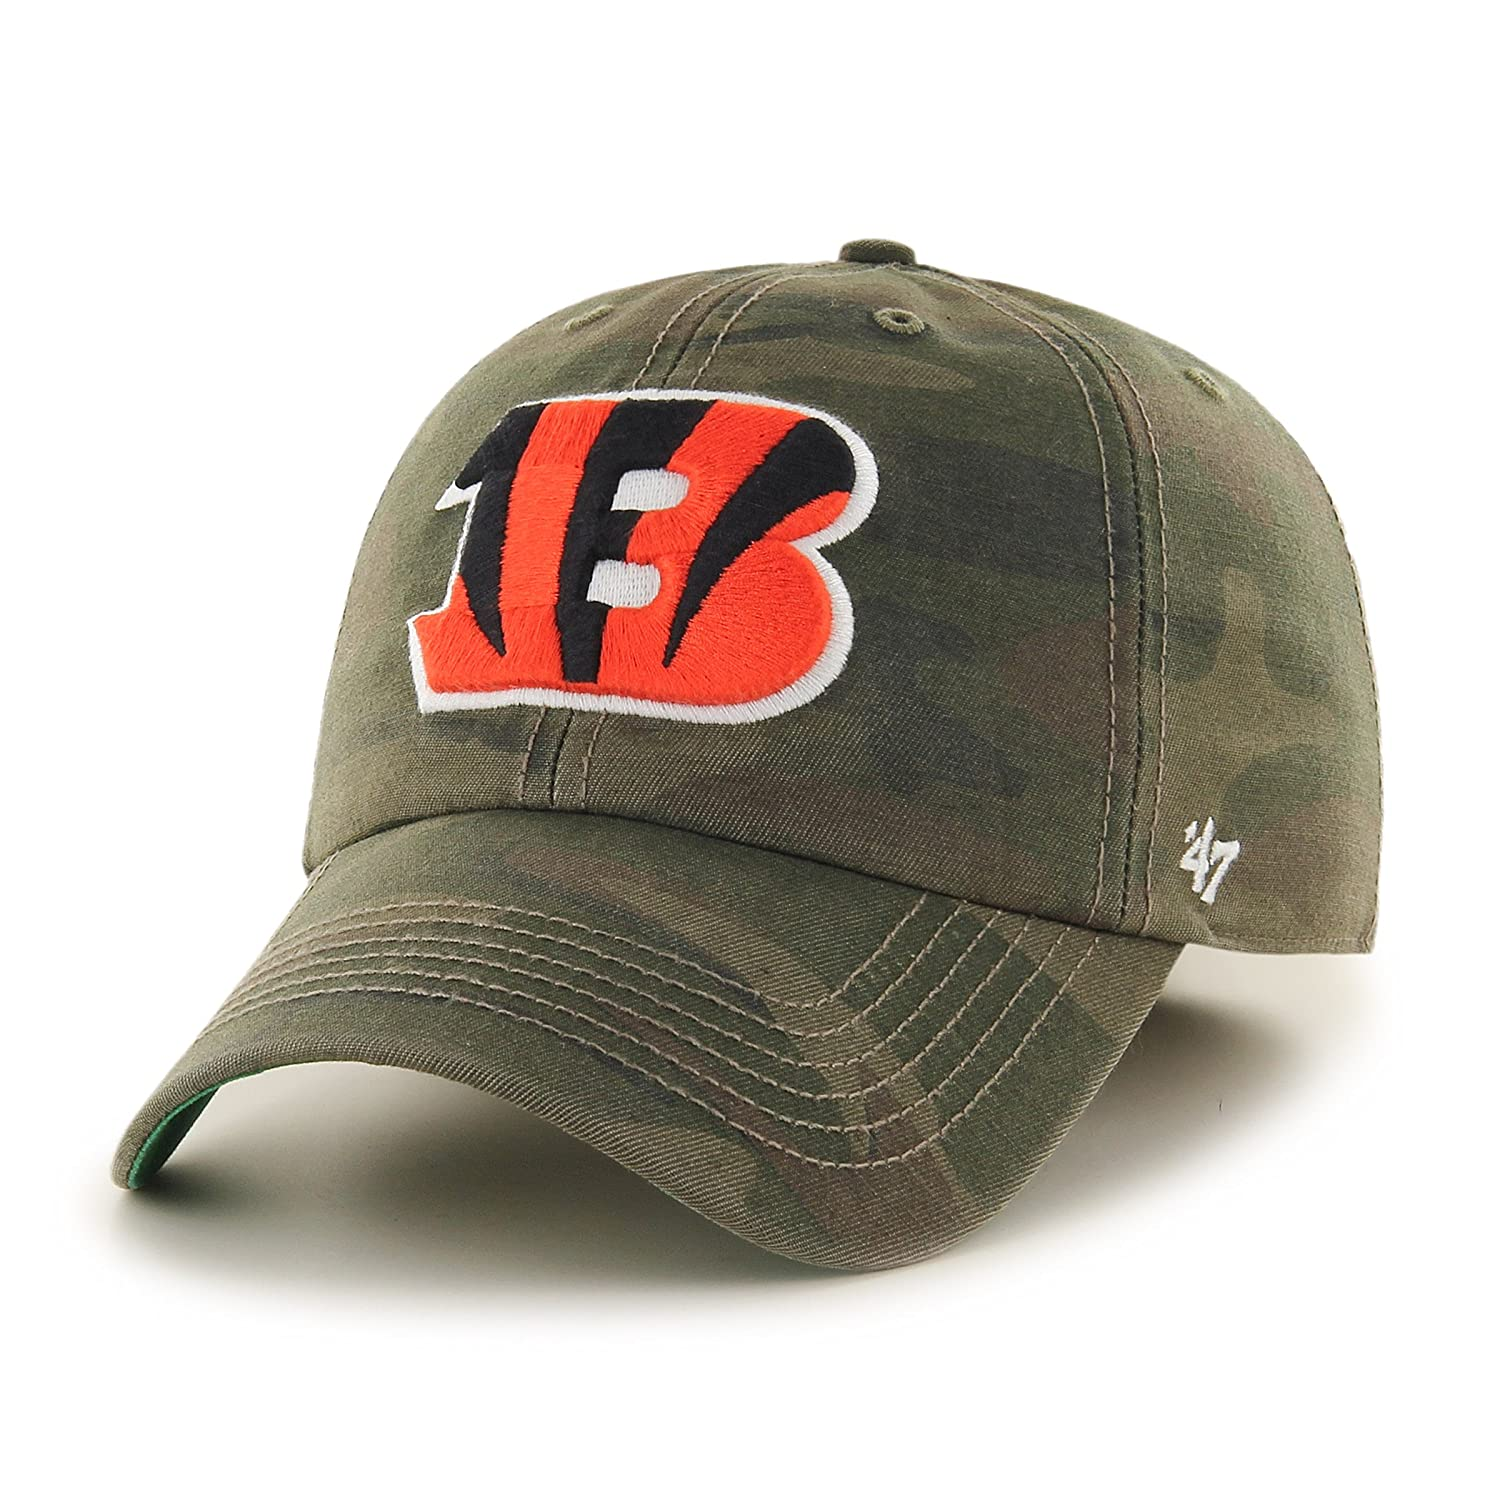 e7f2c8670ced66 Amazon.com : '47 NFL Harlan Franchise Fitted Hat : Clothing